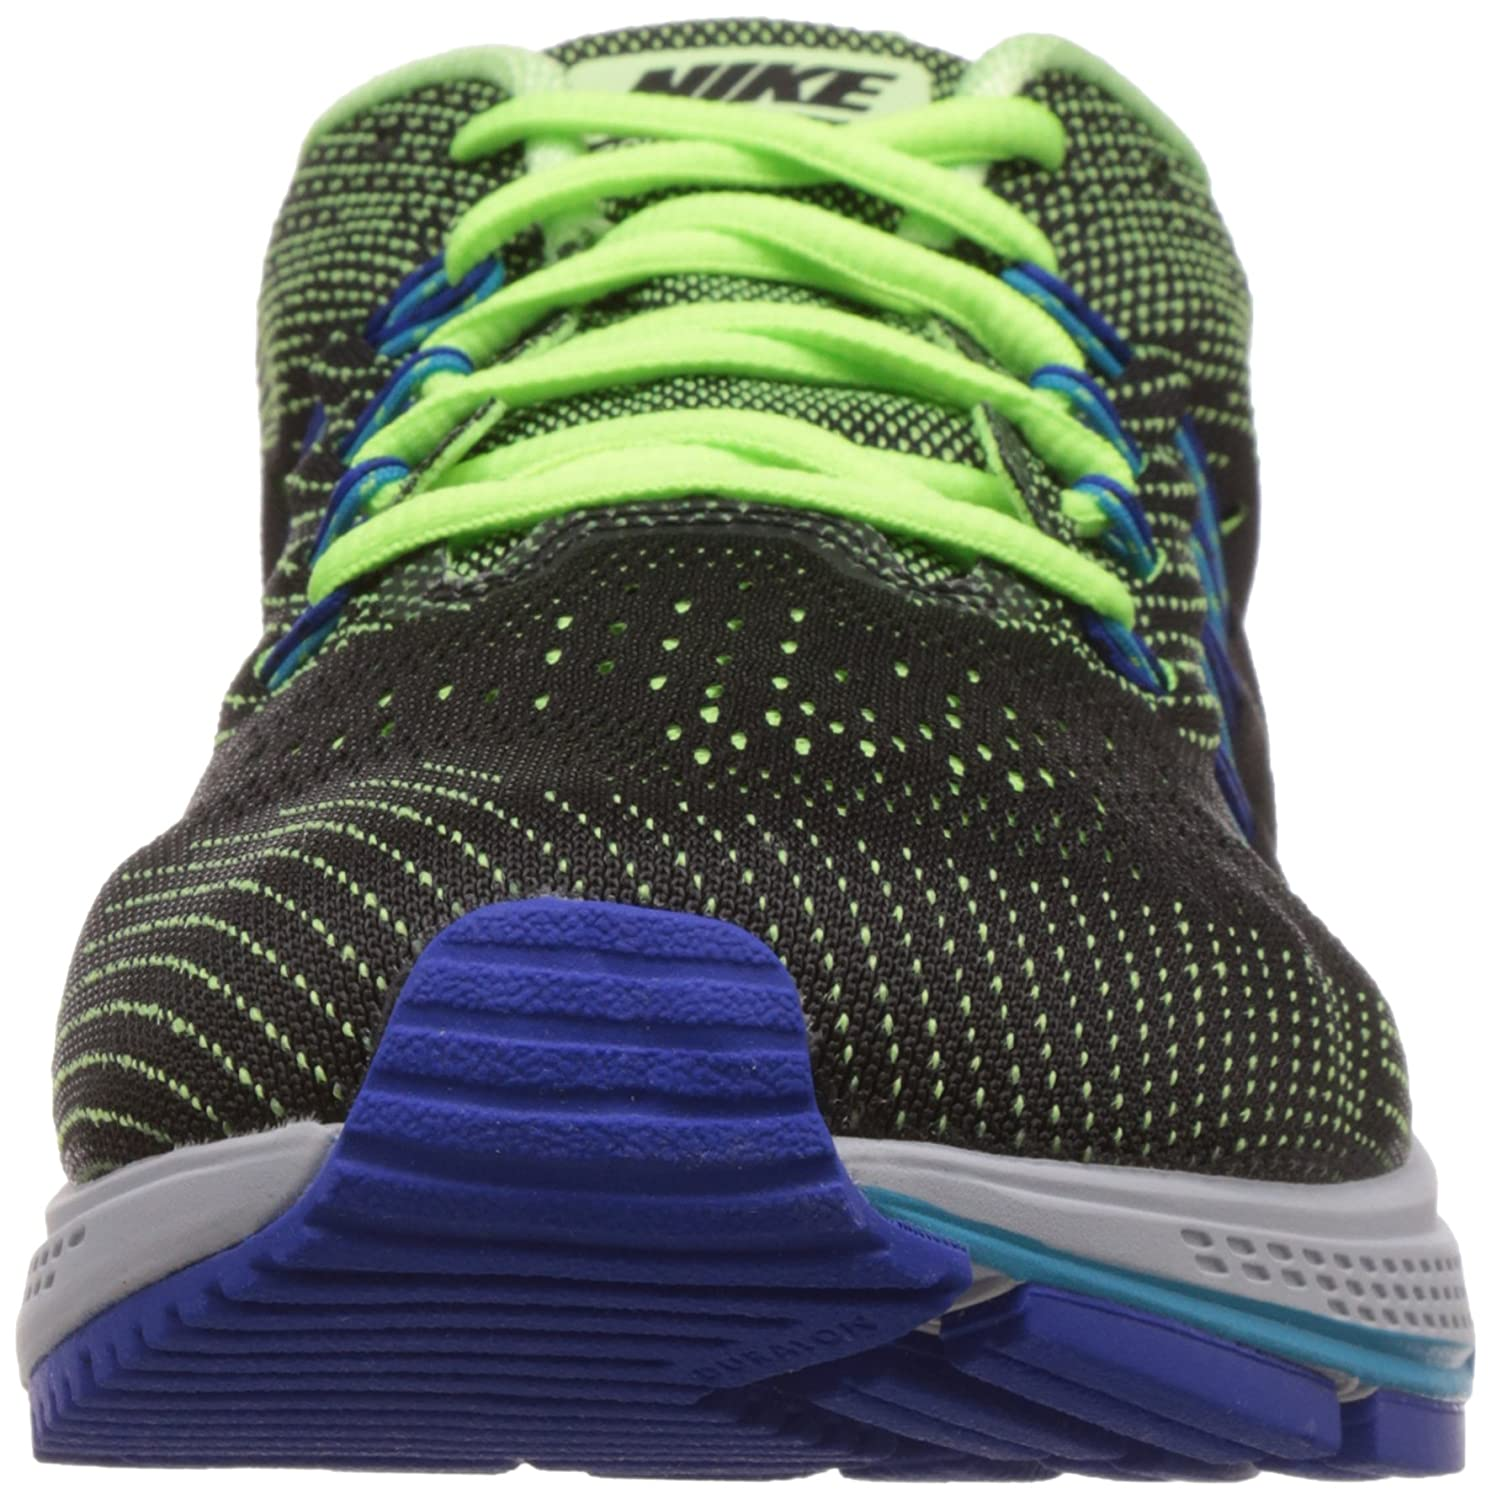 Nike Air Zoom Vomero 10, Men's Training Shoes: Amazon.co.uk: Shoes & Bags